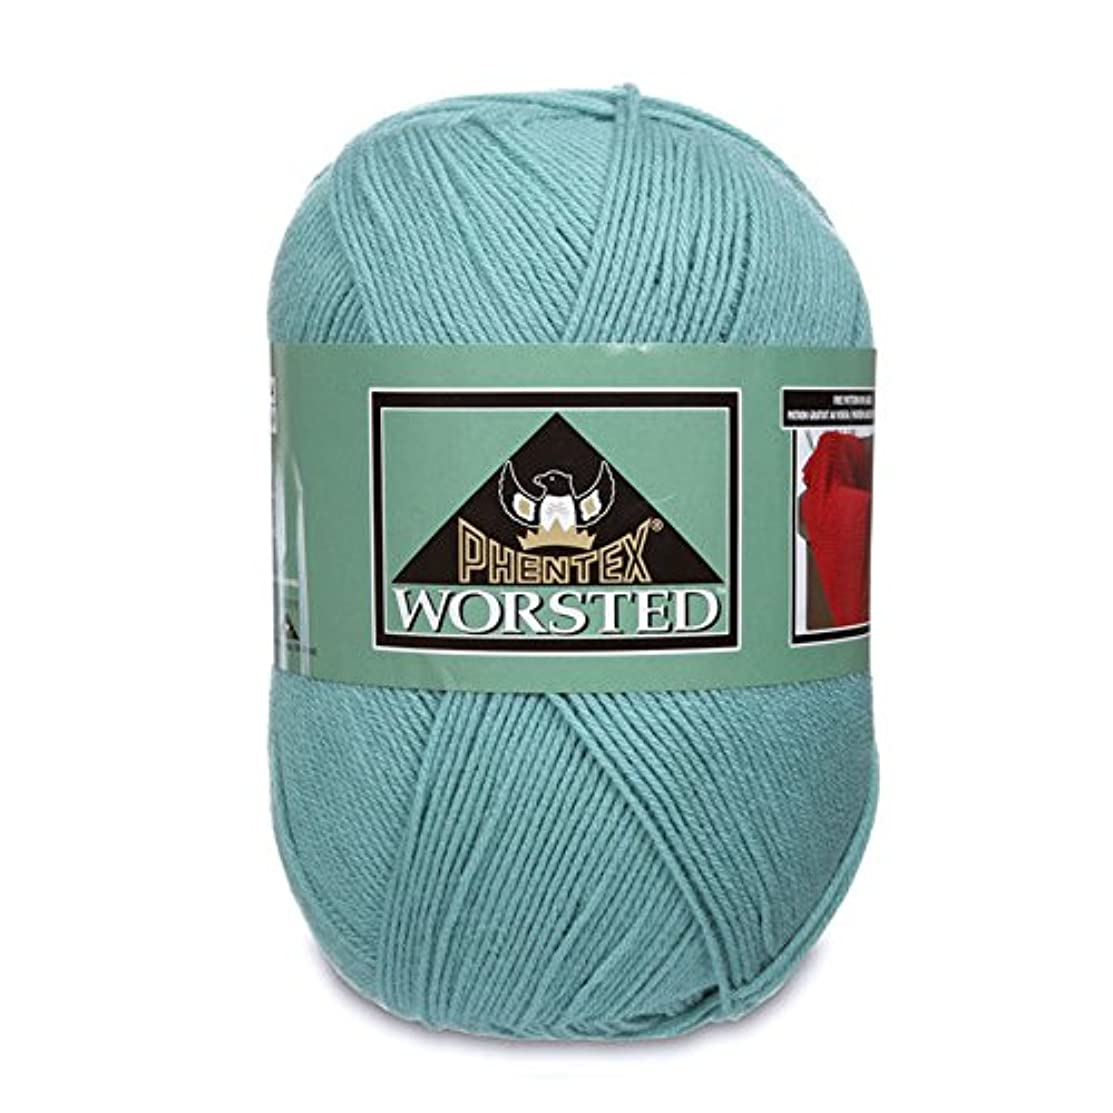 Phentex Worsted Yarn, 14 Ounce, Light Green, Single Ball